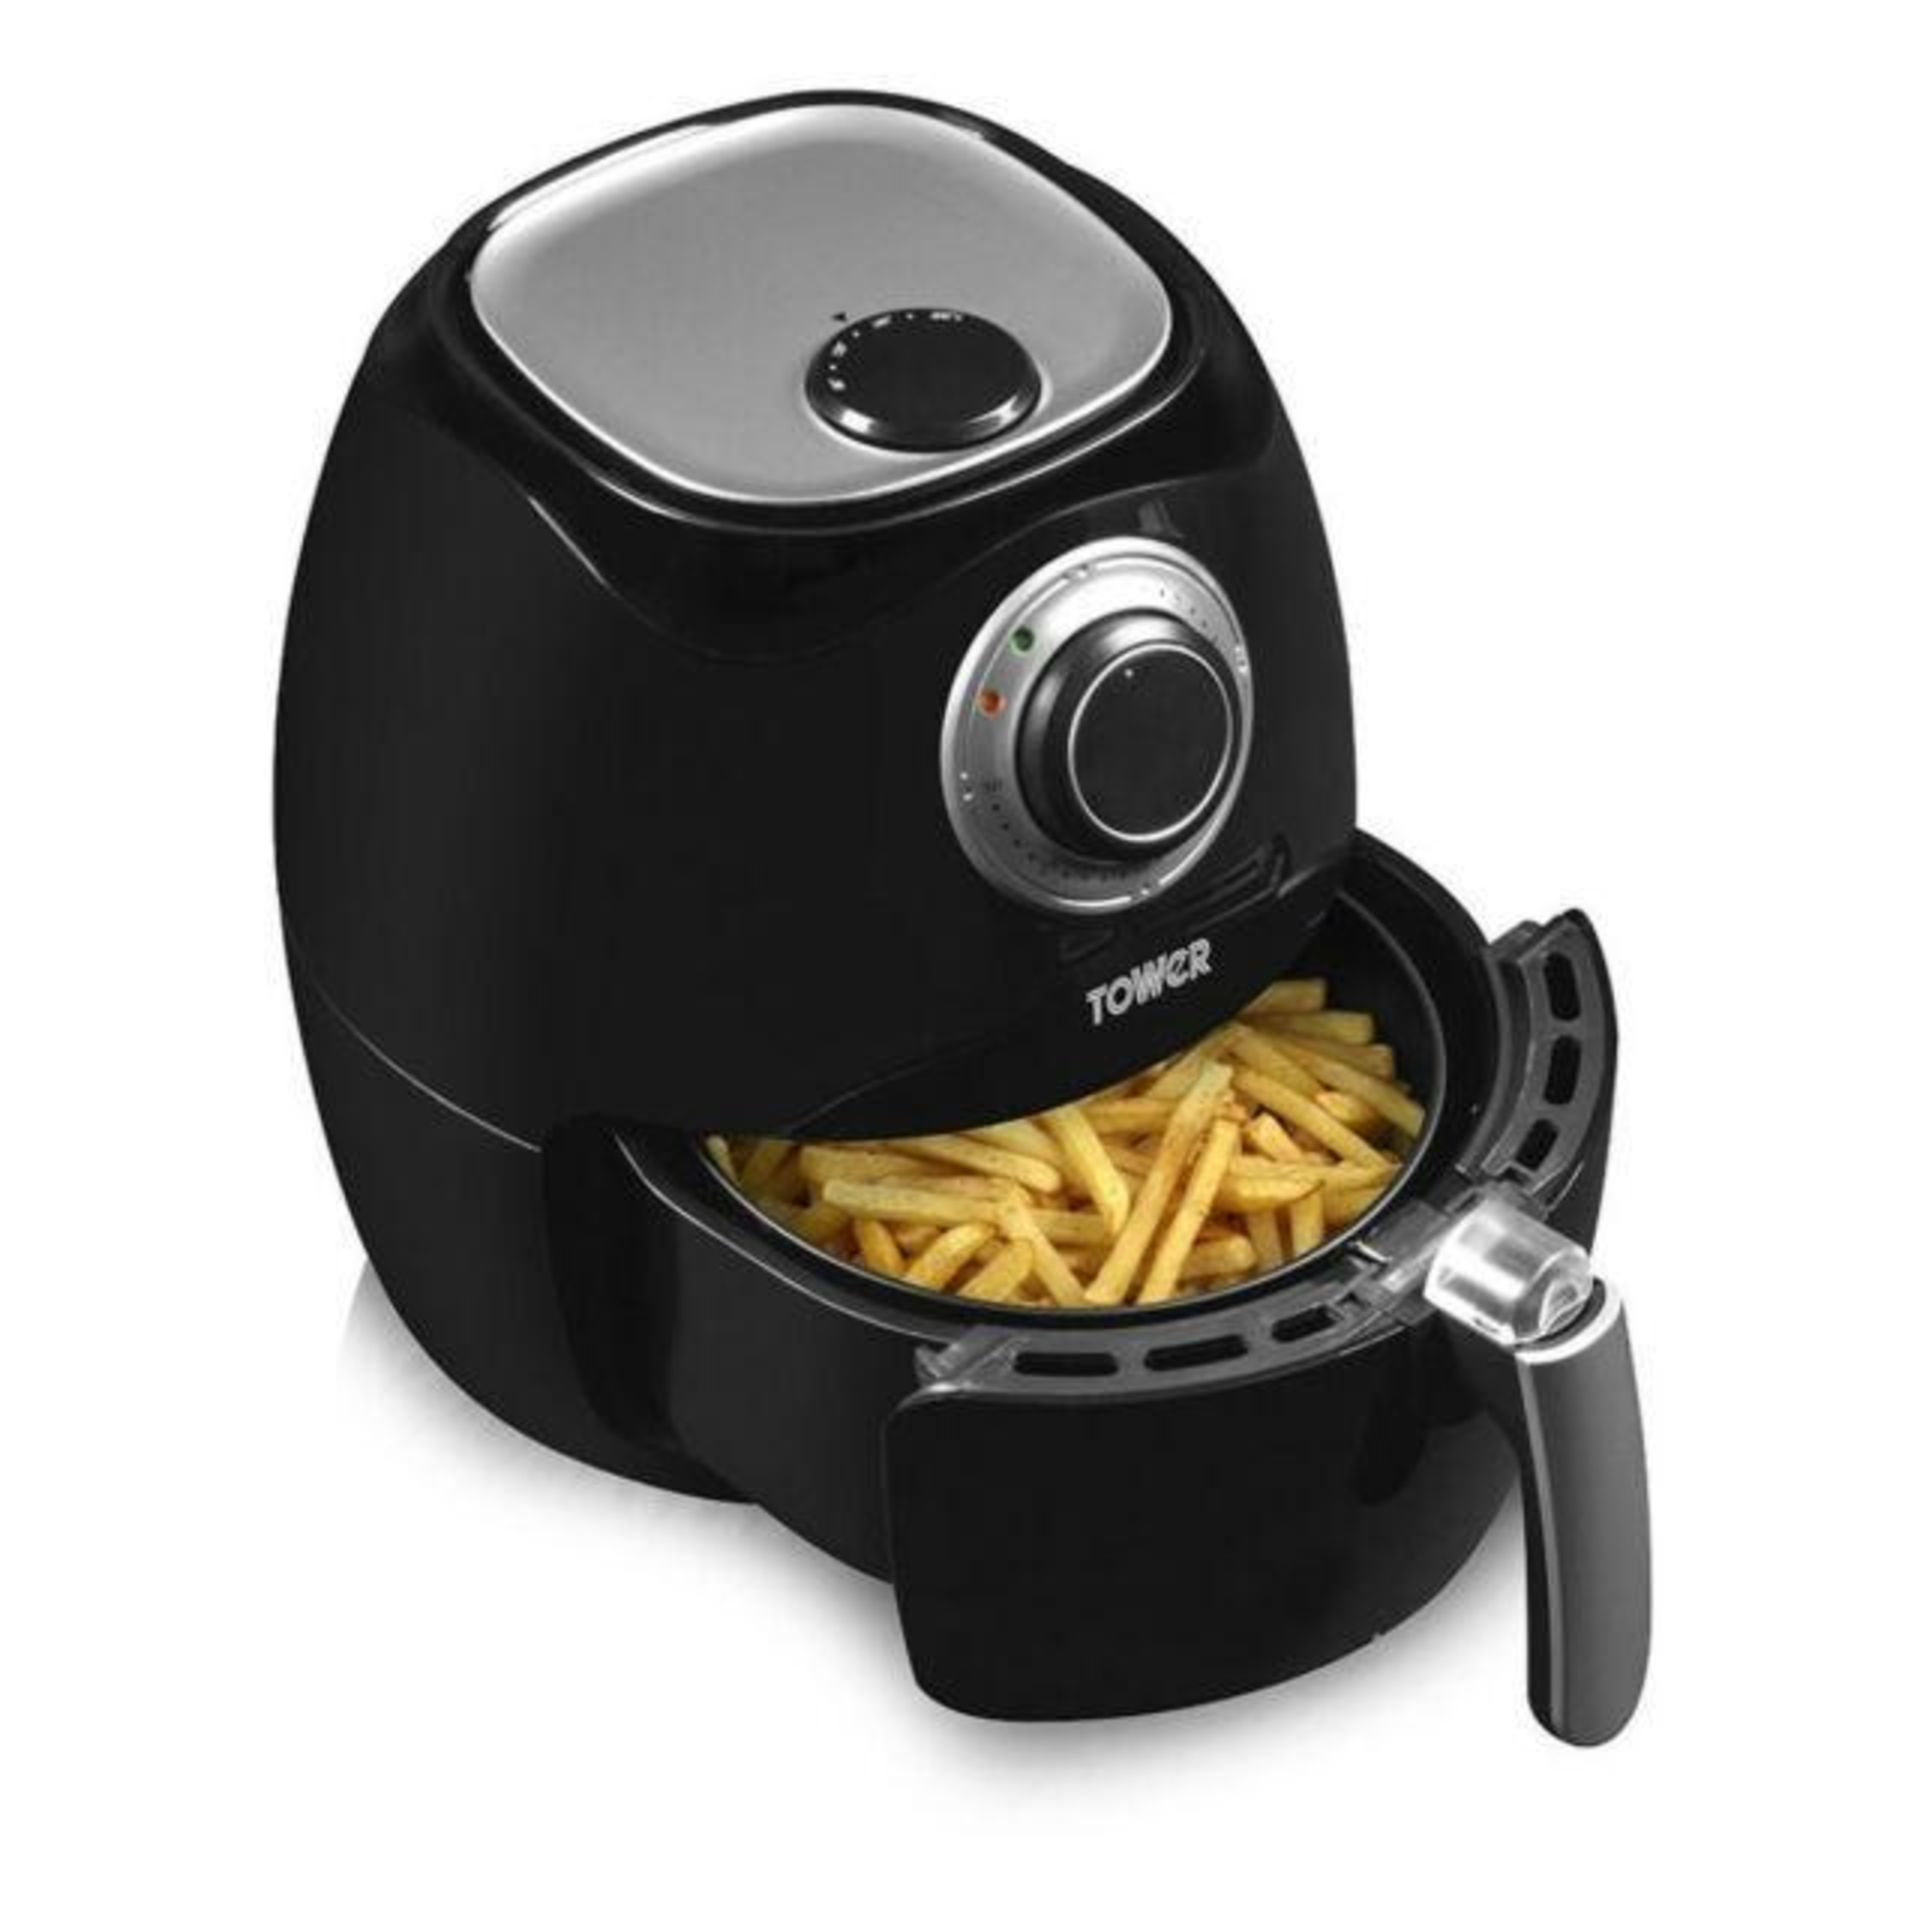 Tower T17005 Air Fryer with Rapid Air Circulation System, VORTX Frying Technology - £49.45 RRP